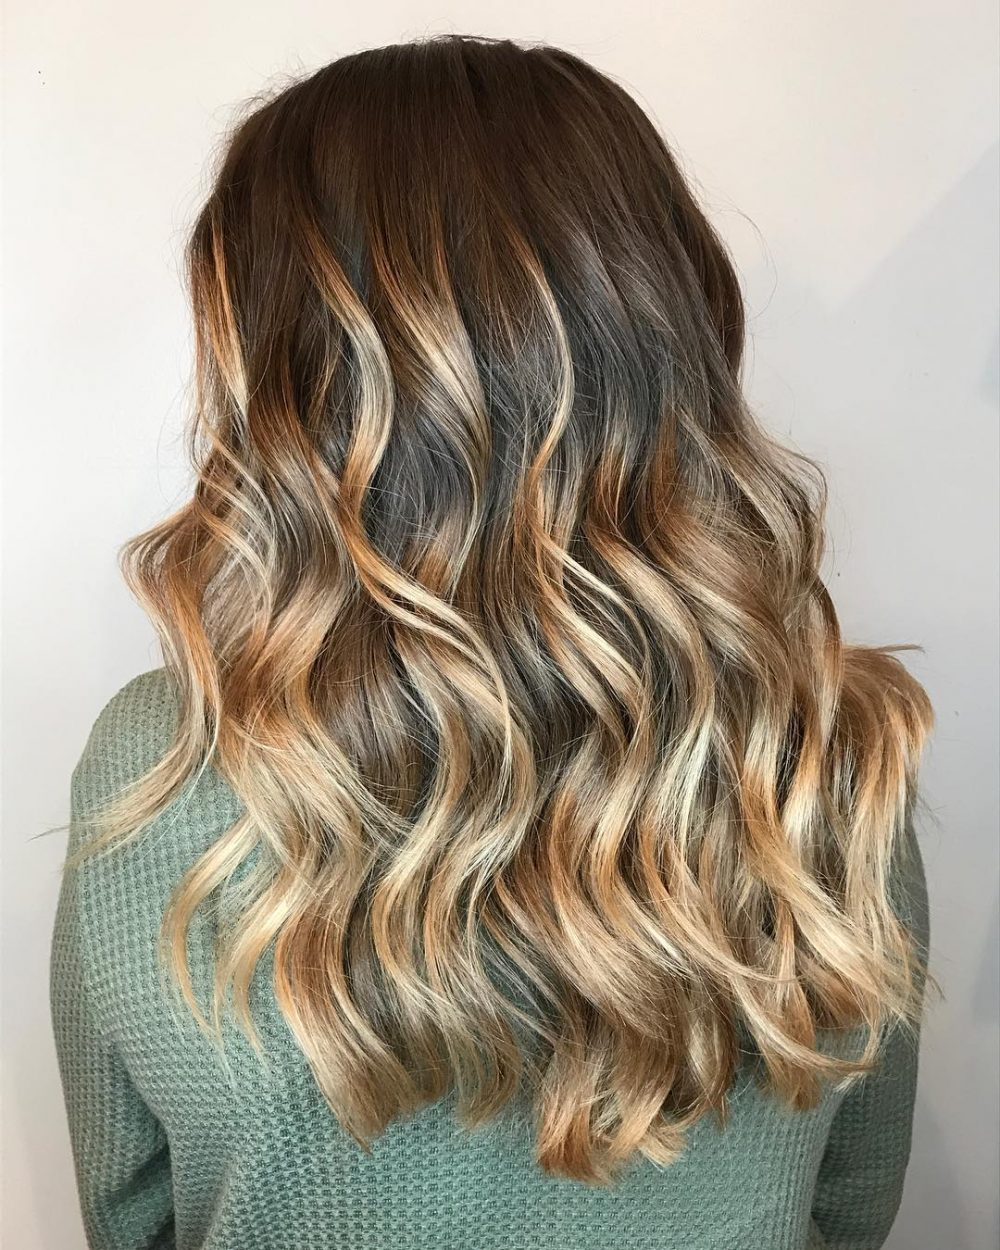 Modern Ombre hairstyle